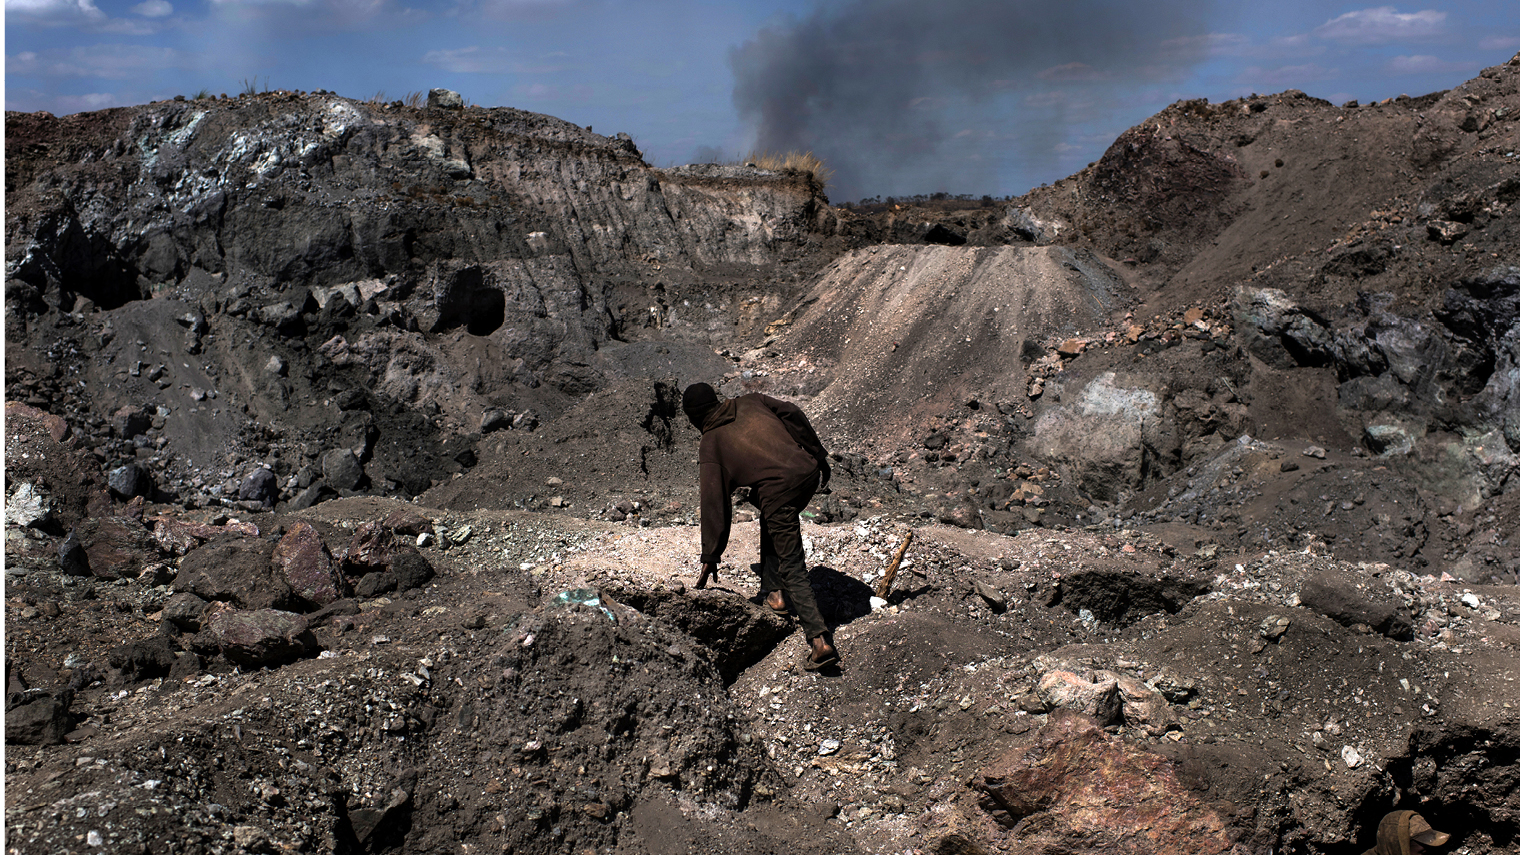 Cobalt mining in the DRC: the dark side of a clean future